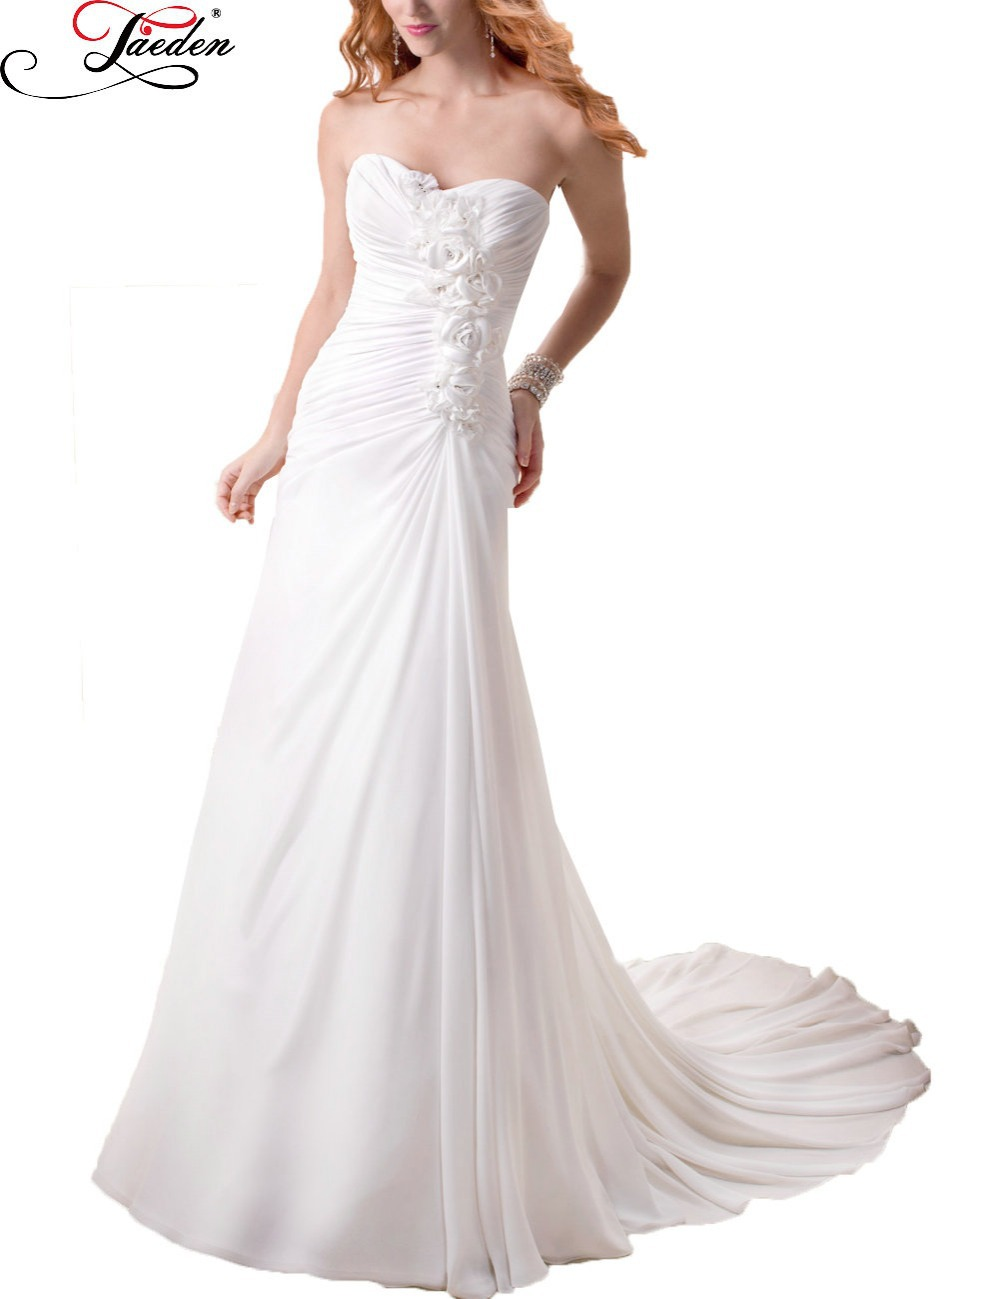 Wedding dresses for cheap prices bridesmaid dresses for Cost of a wedding dress